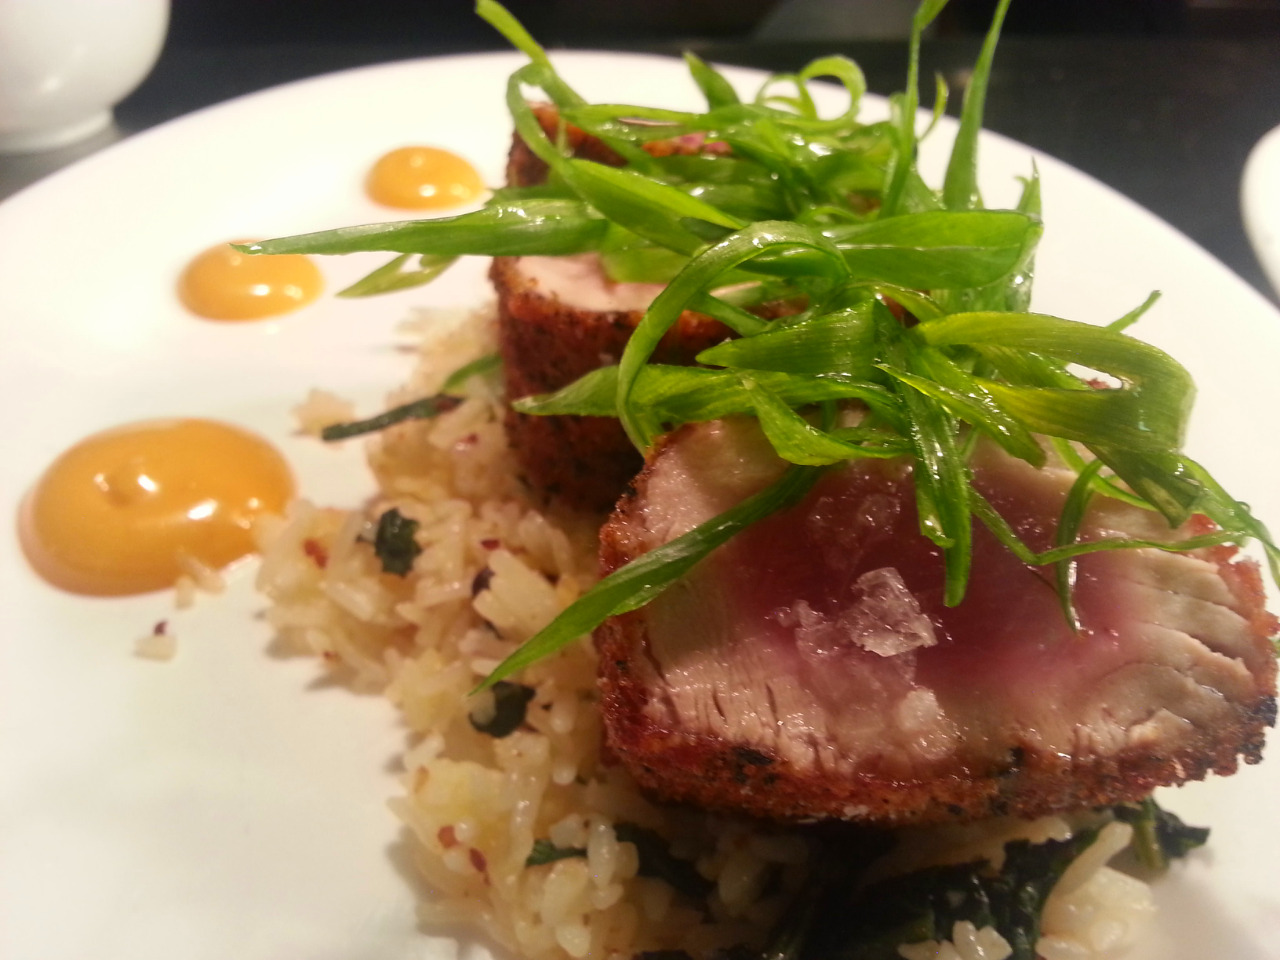 Nori crusted tuna, fried rice with Chinese broccoli